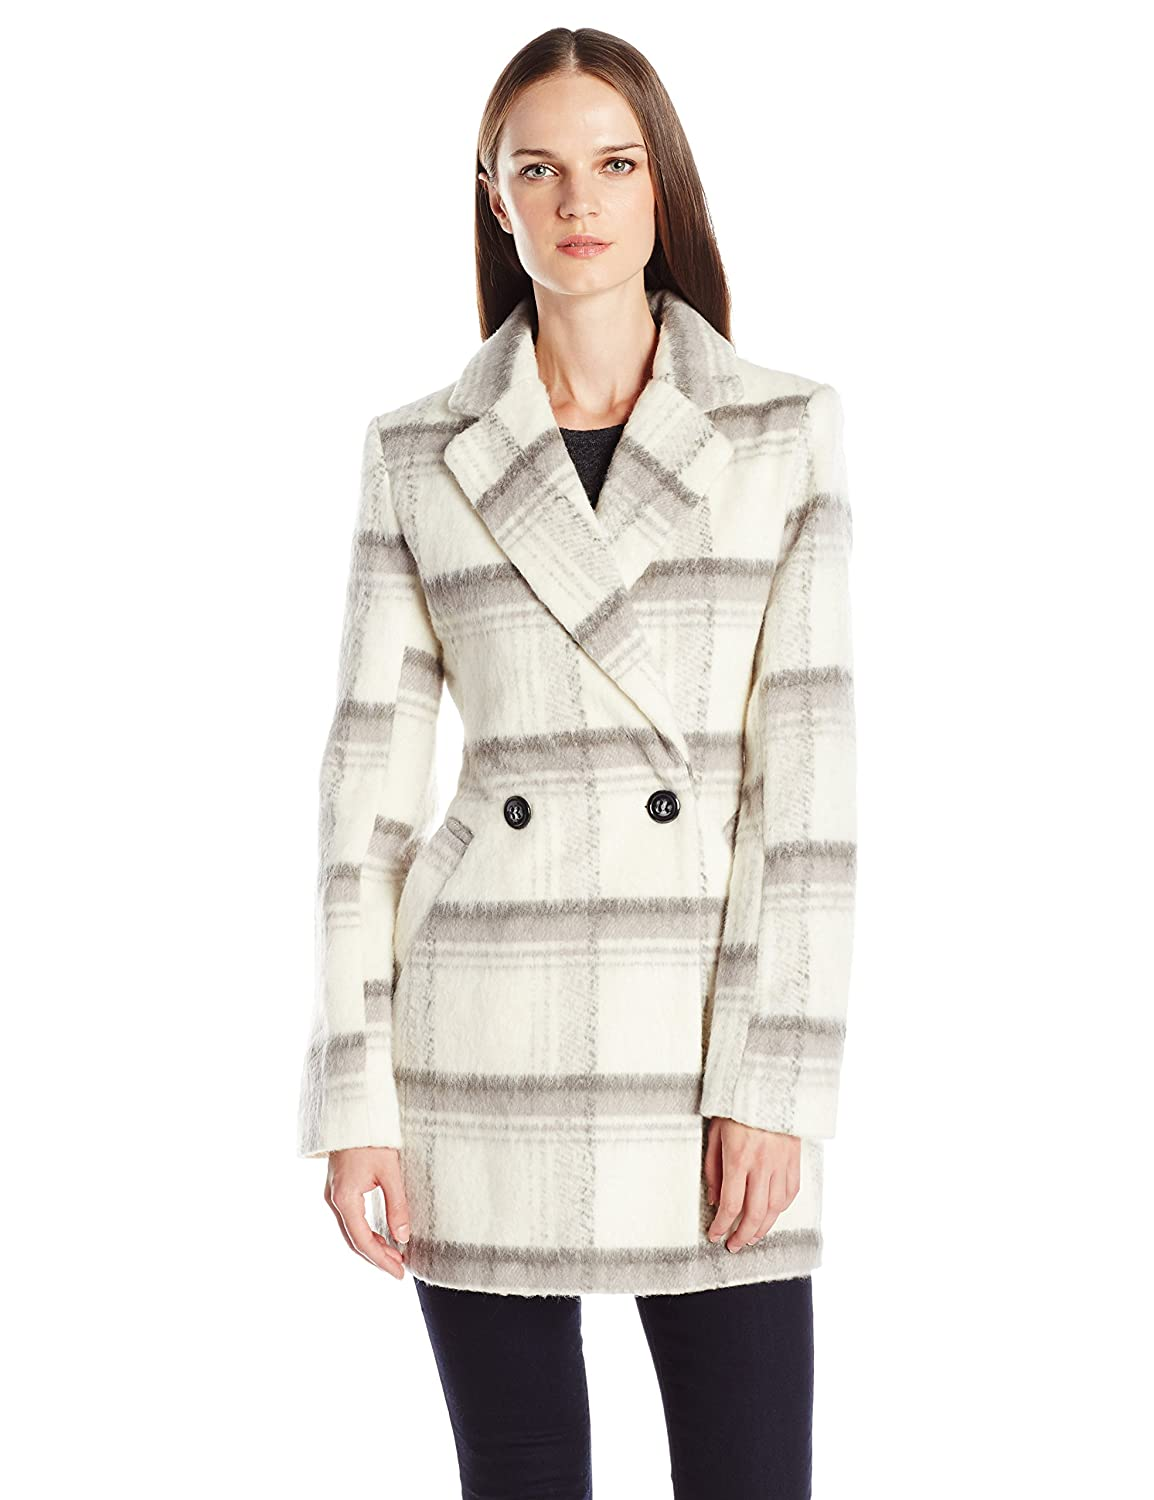 Byer California Women's Plaid Faux Mohair Wool Oversized Peacoat Byer California Outerwear BW68040